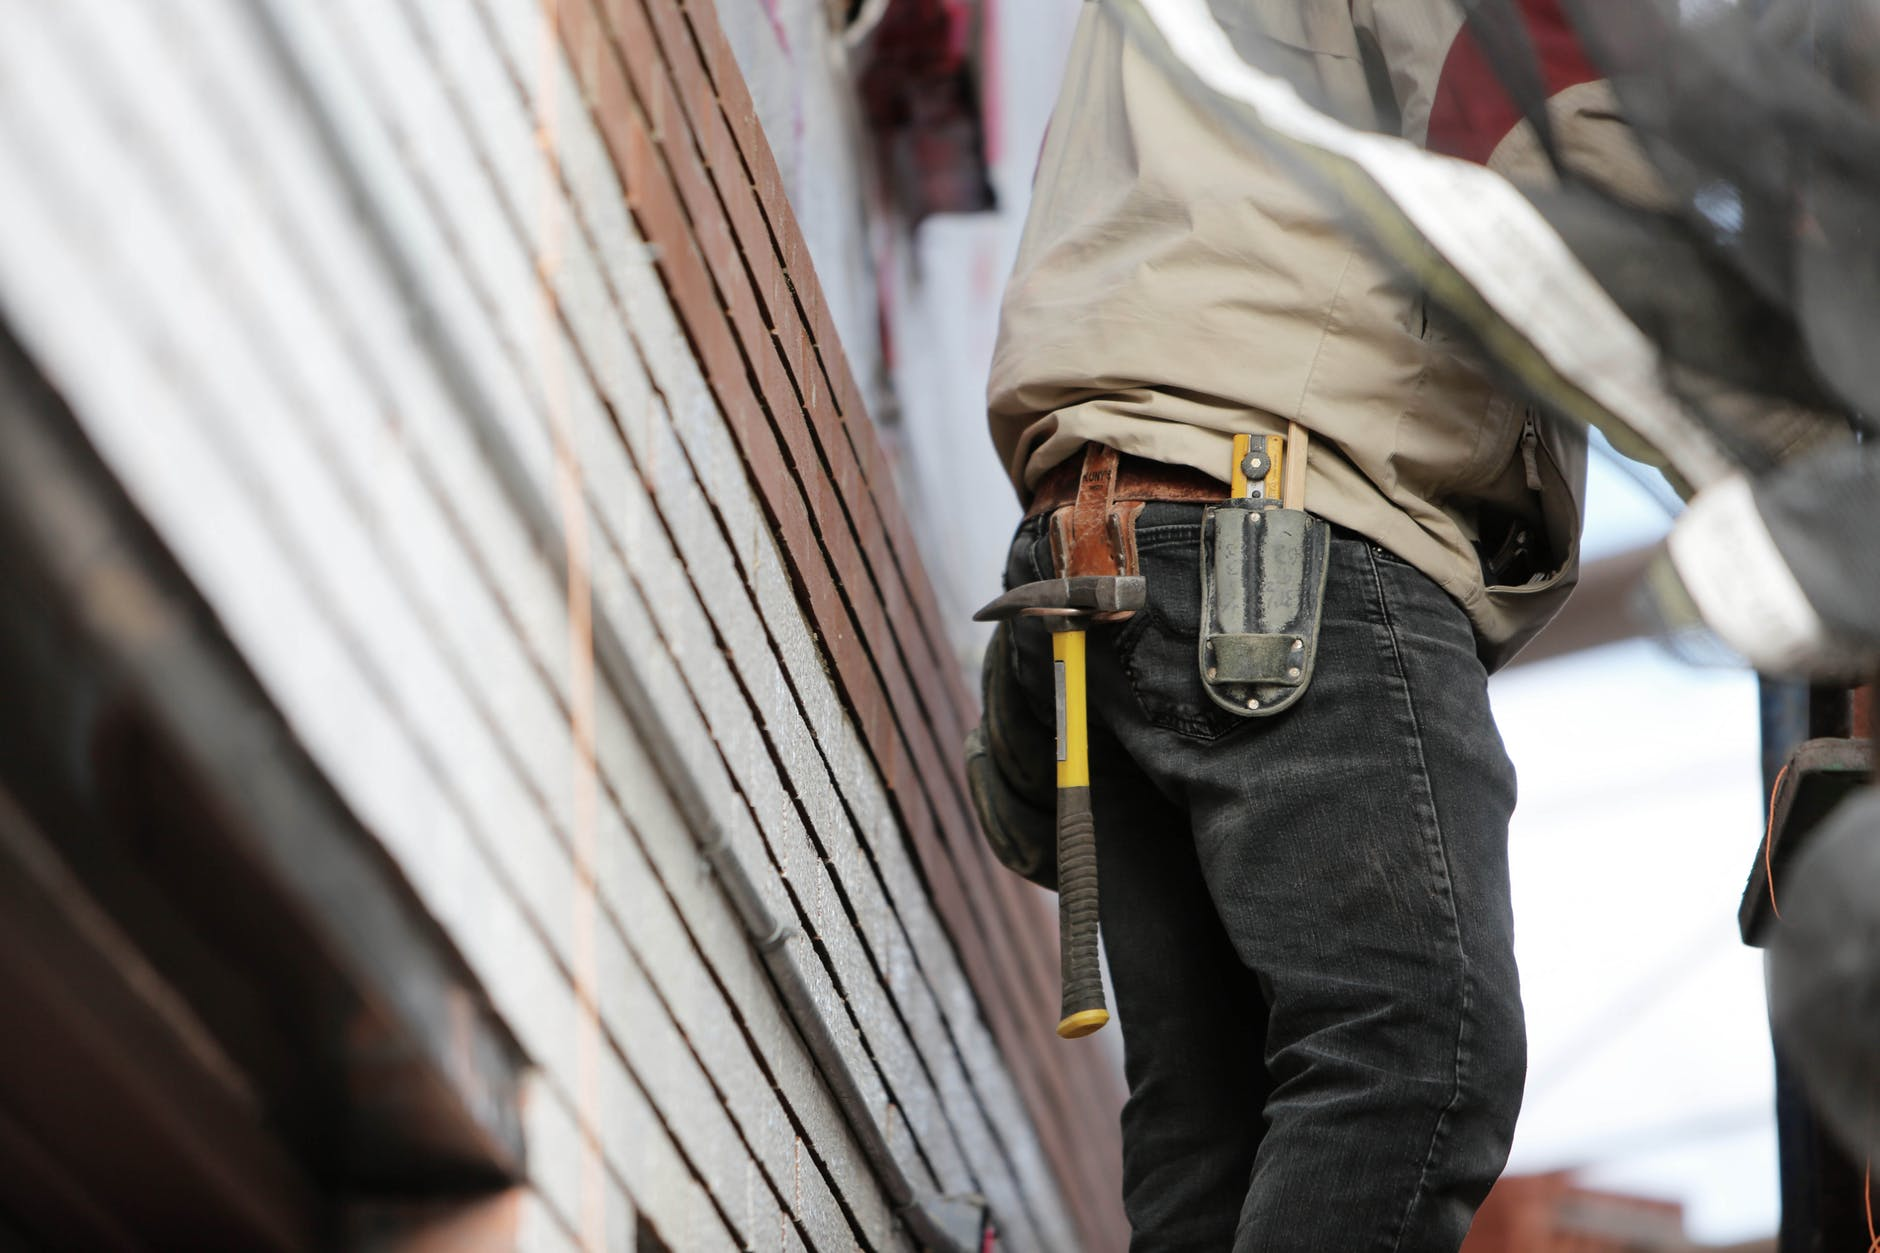 Choosing The Right Clothes For A Construction Site